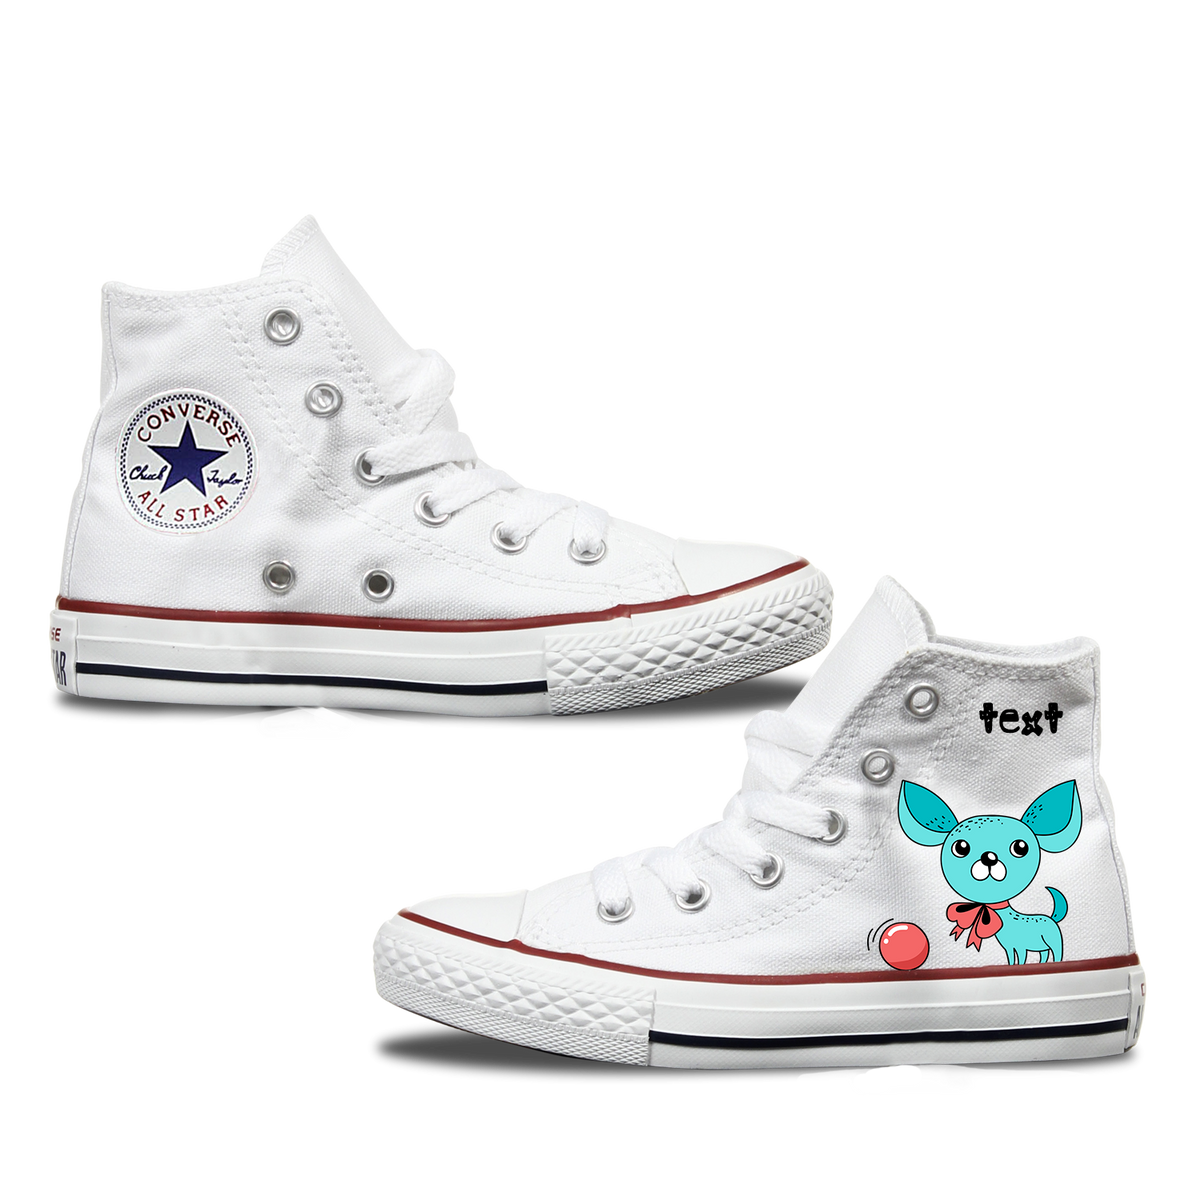 Chihuahua Converse Shoes